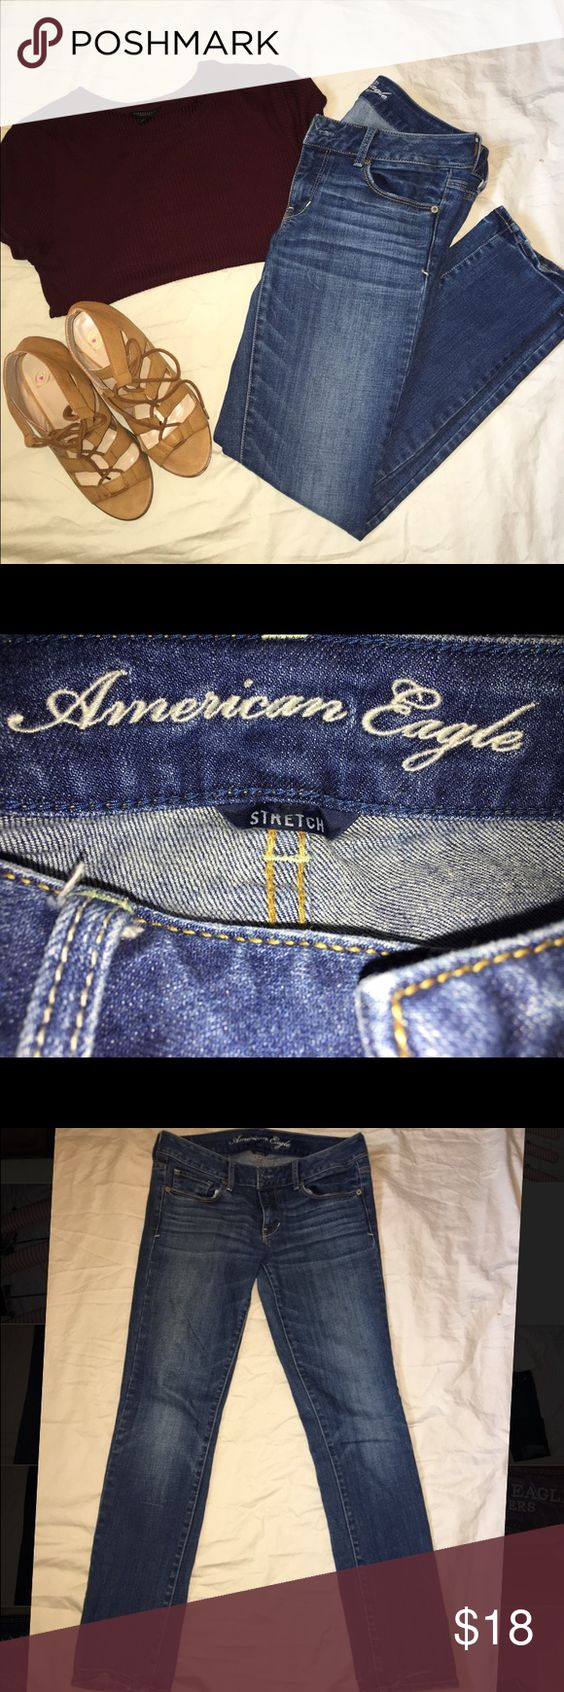 American Eagle Skinny Jeans Very nice and very gently used American Eagle jeans! They are a lighter wash and a size 6 short. Make an offer 😊 American Eagle Outfitters Jeans Skinny